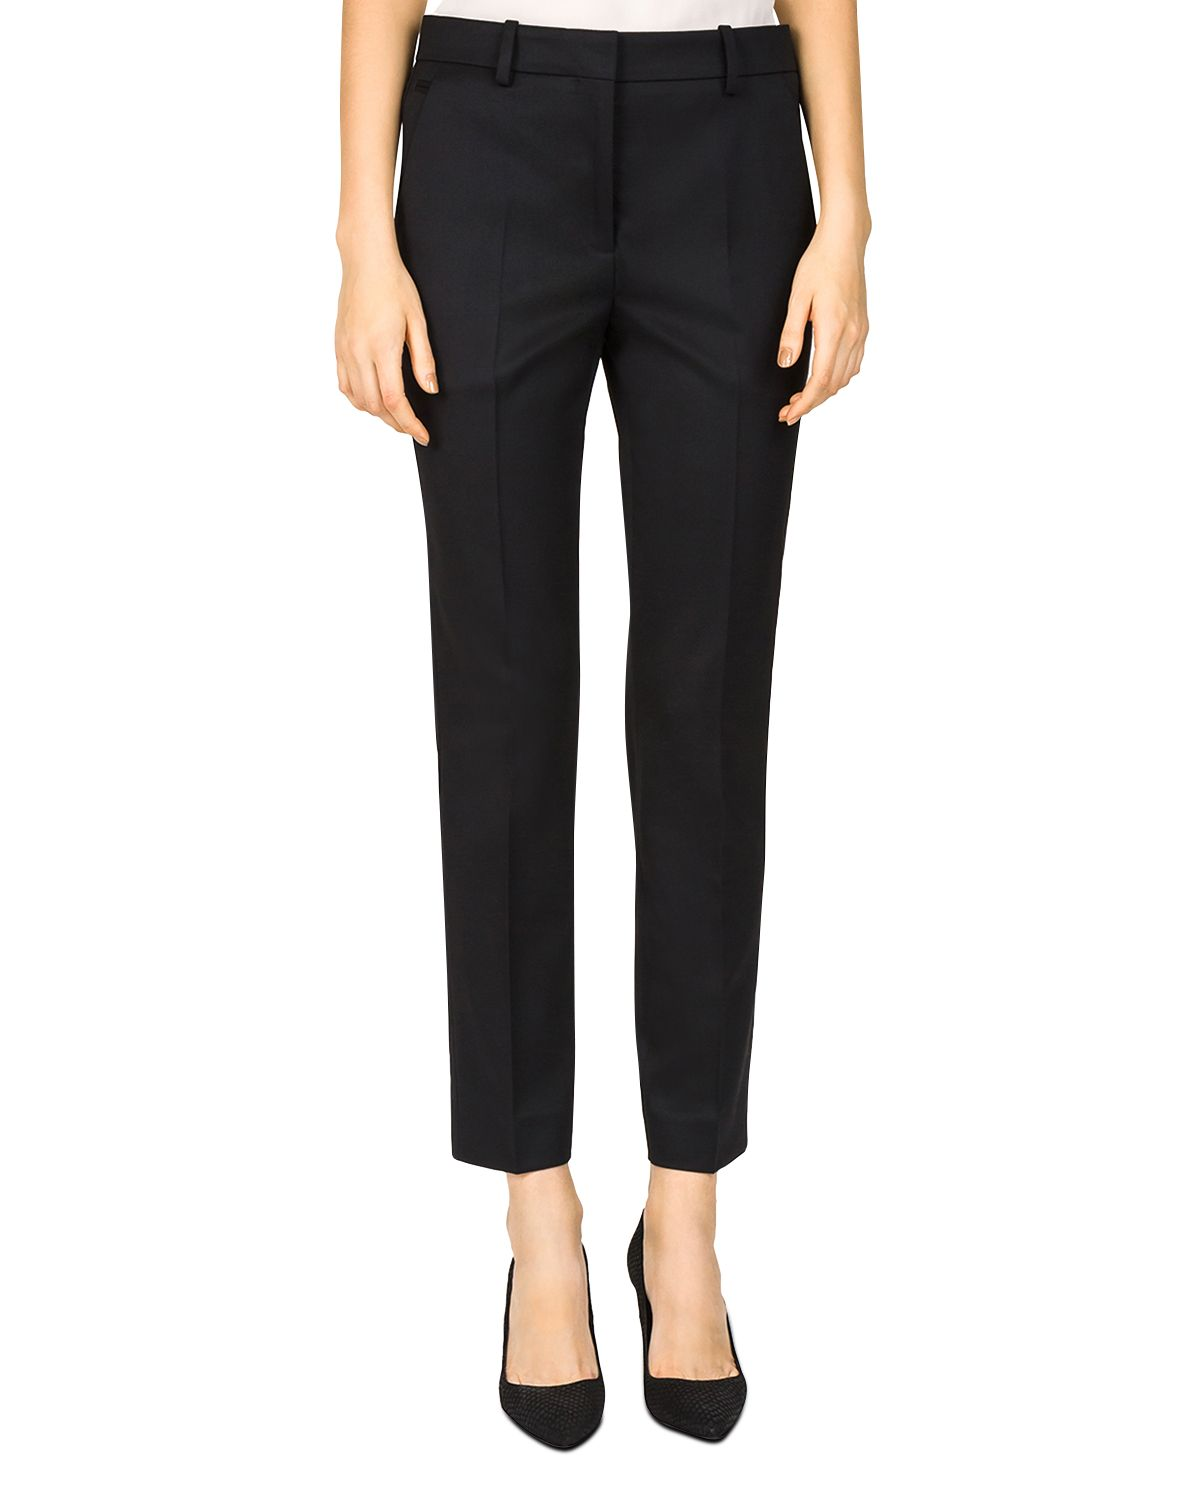 Cropped Stretch Pants by The Kooples